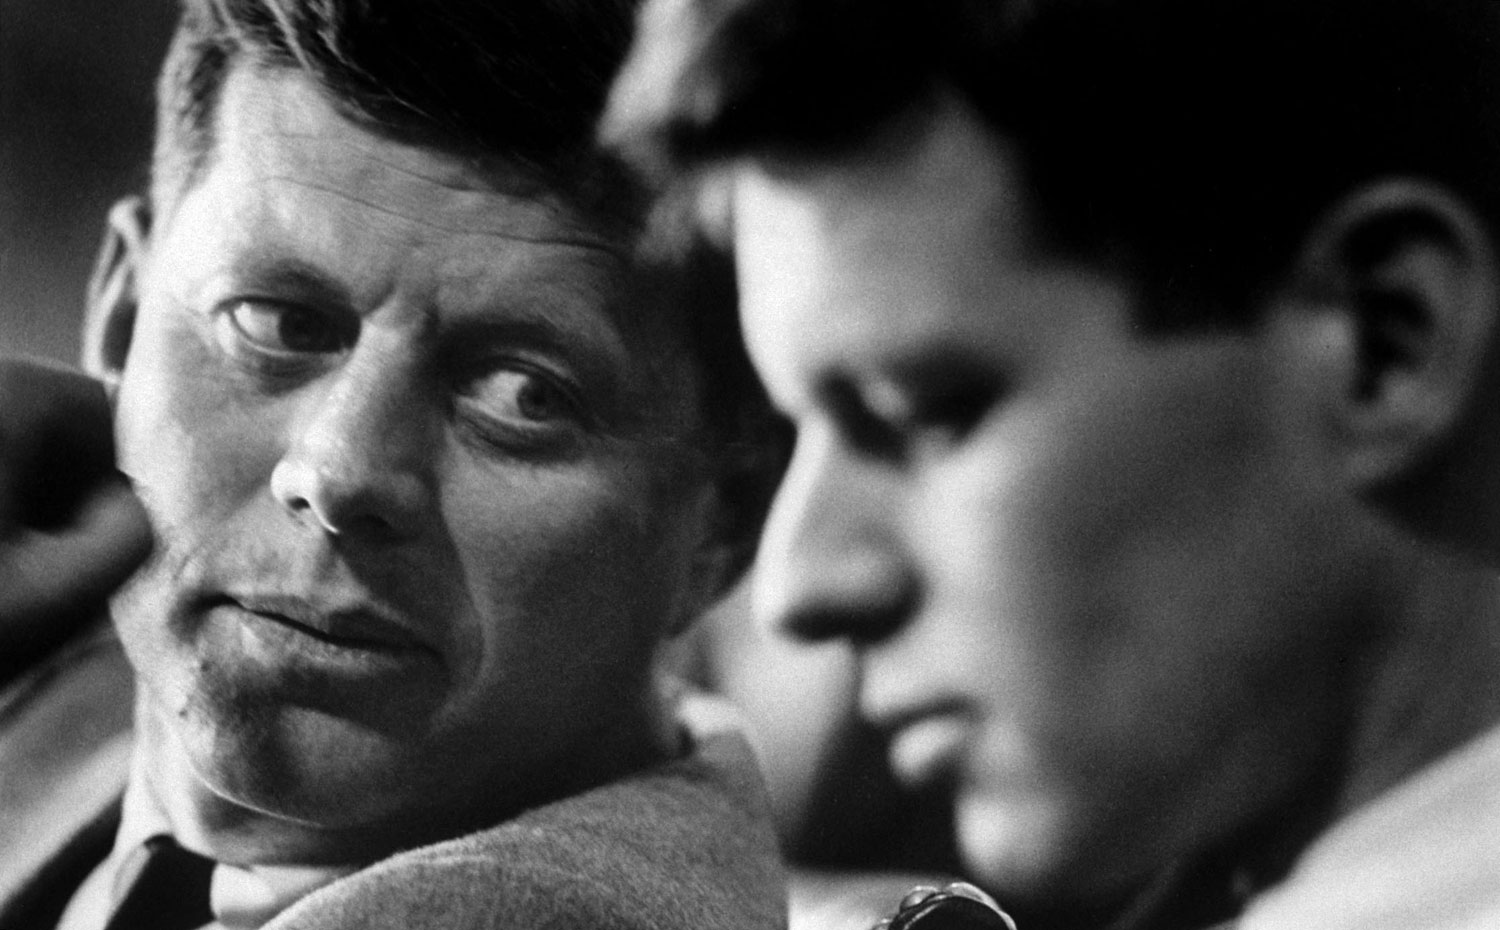 John and Robert Kennedy at a hearing of a Senate select committee on labor racketeering, 1957.